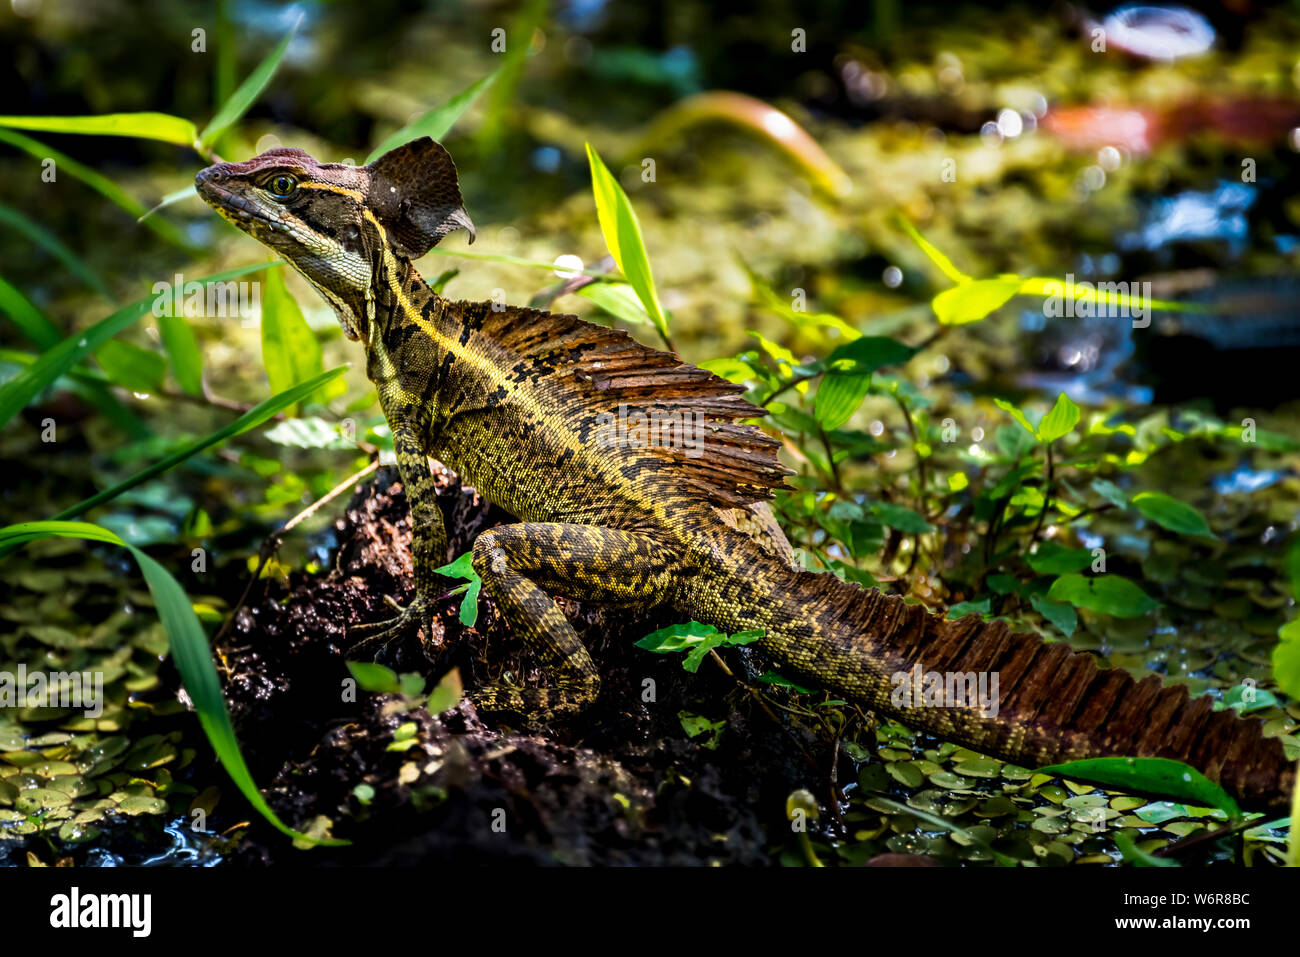 Basiliscus, commonly known as the Jesus Christ lizard Image taken in Panama Stock Photo